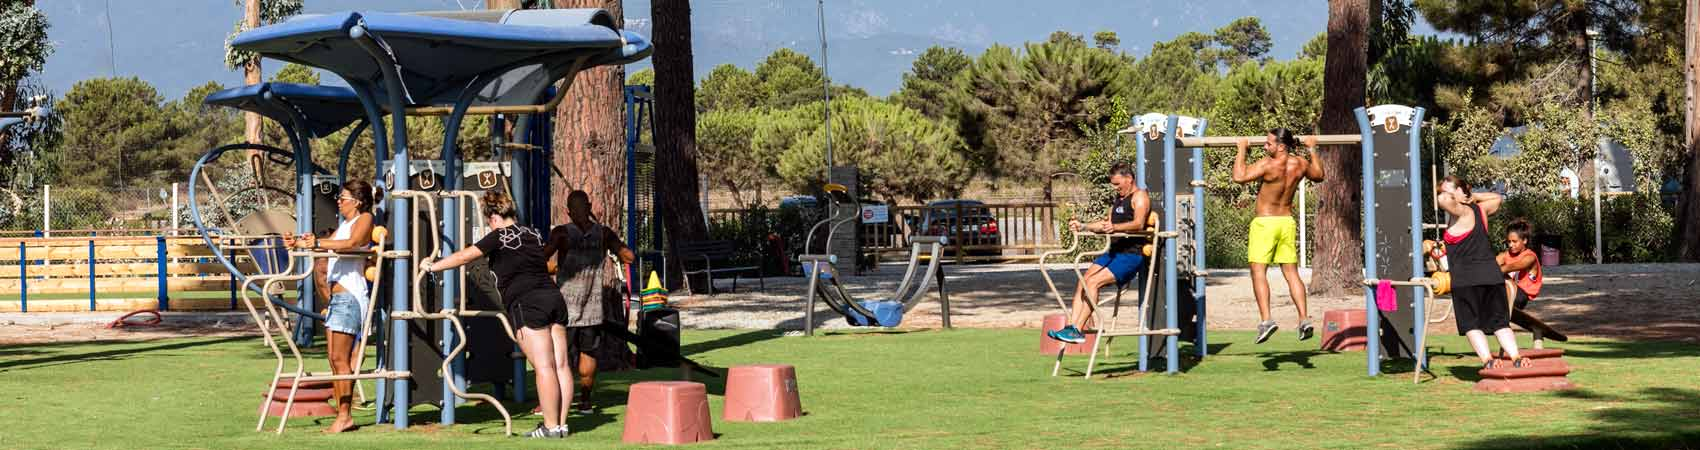 Camping corse avec animations